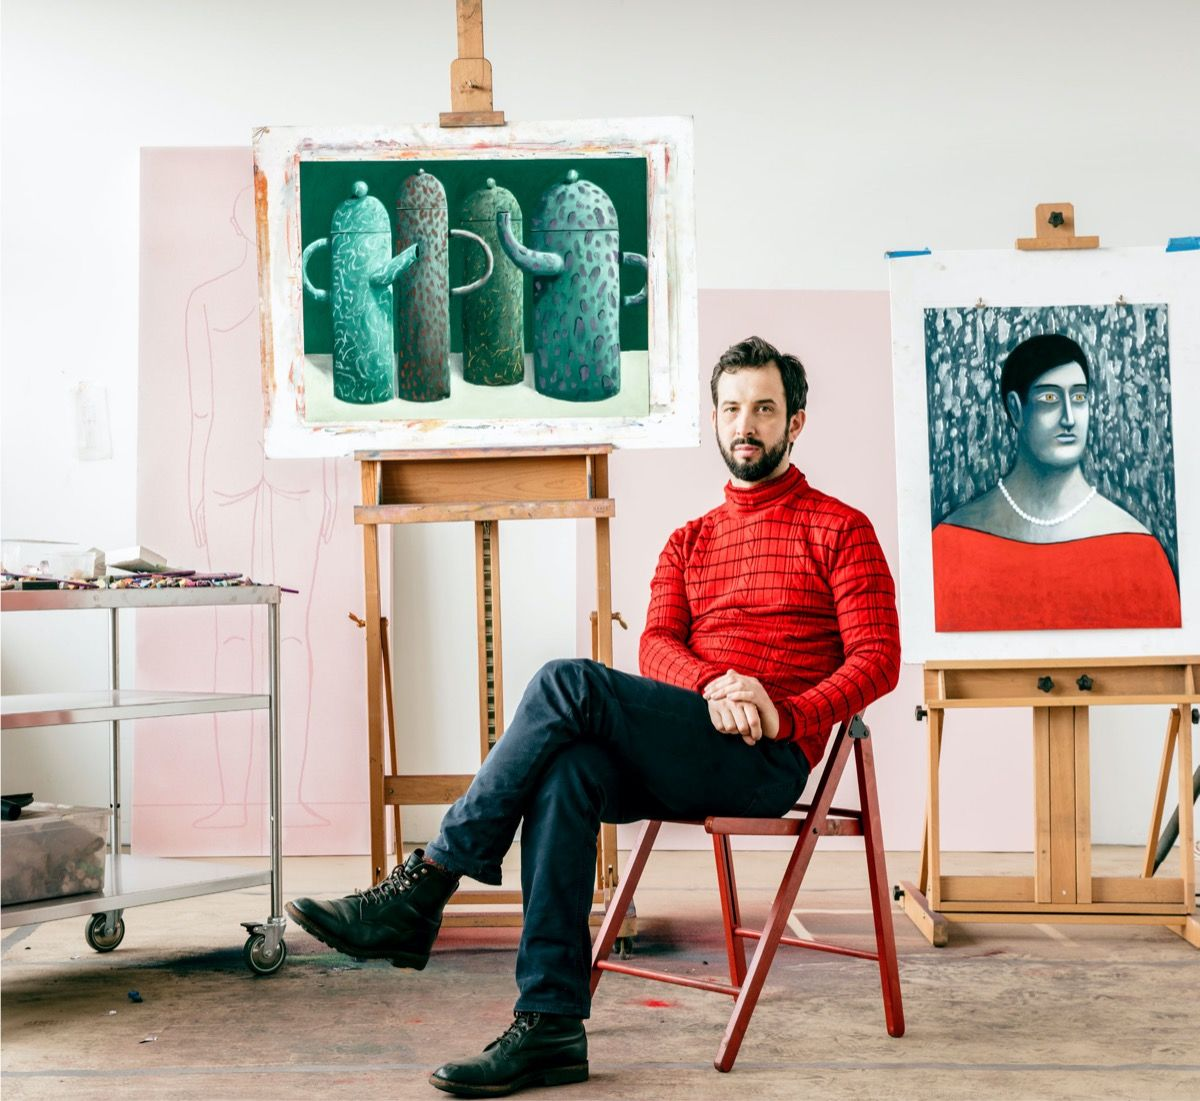 Beloved for His Popping Pastels, Nicolas Party Takes a Darker Turn